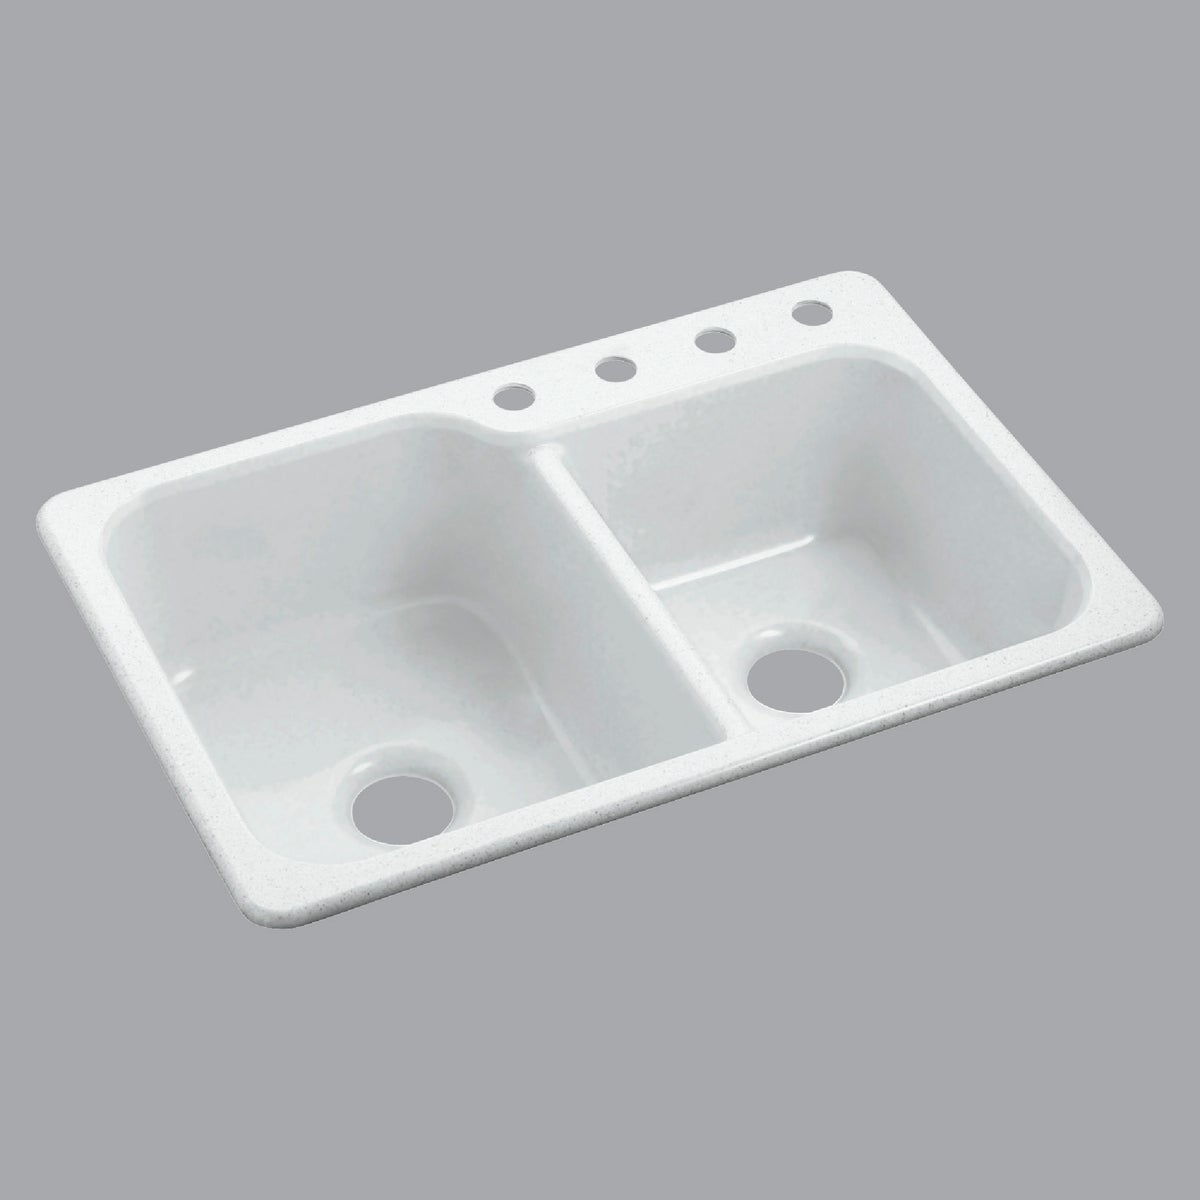 WHITE COMPOSITE SINK